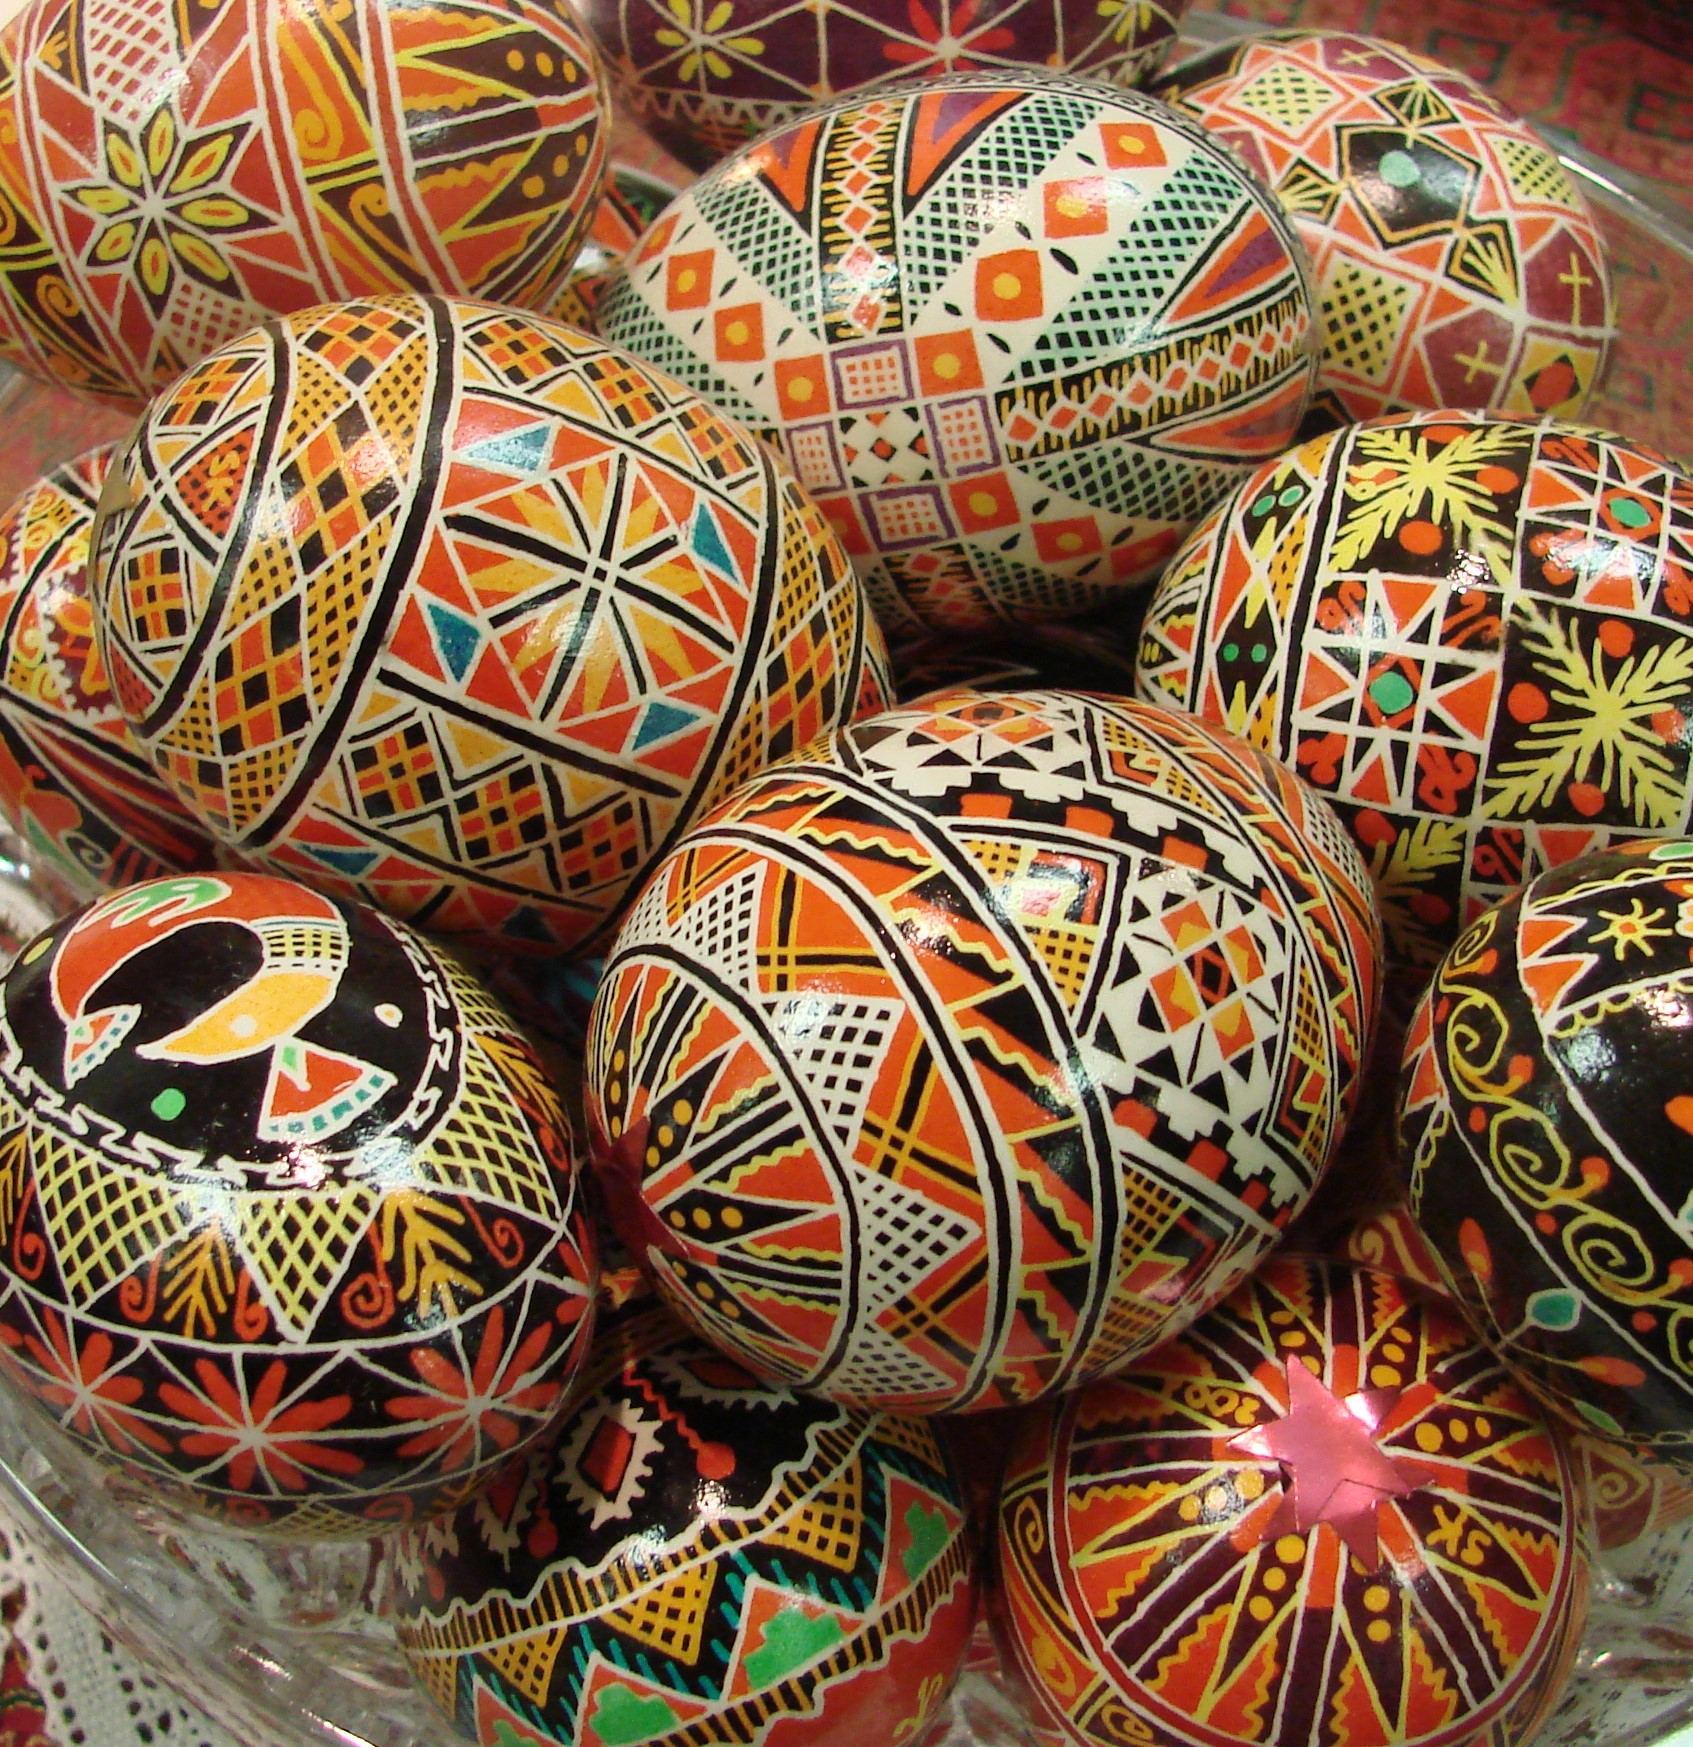 Painted Eggs - Russian Orthodox Festival